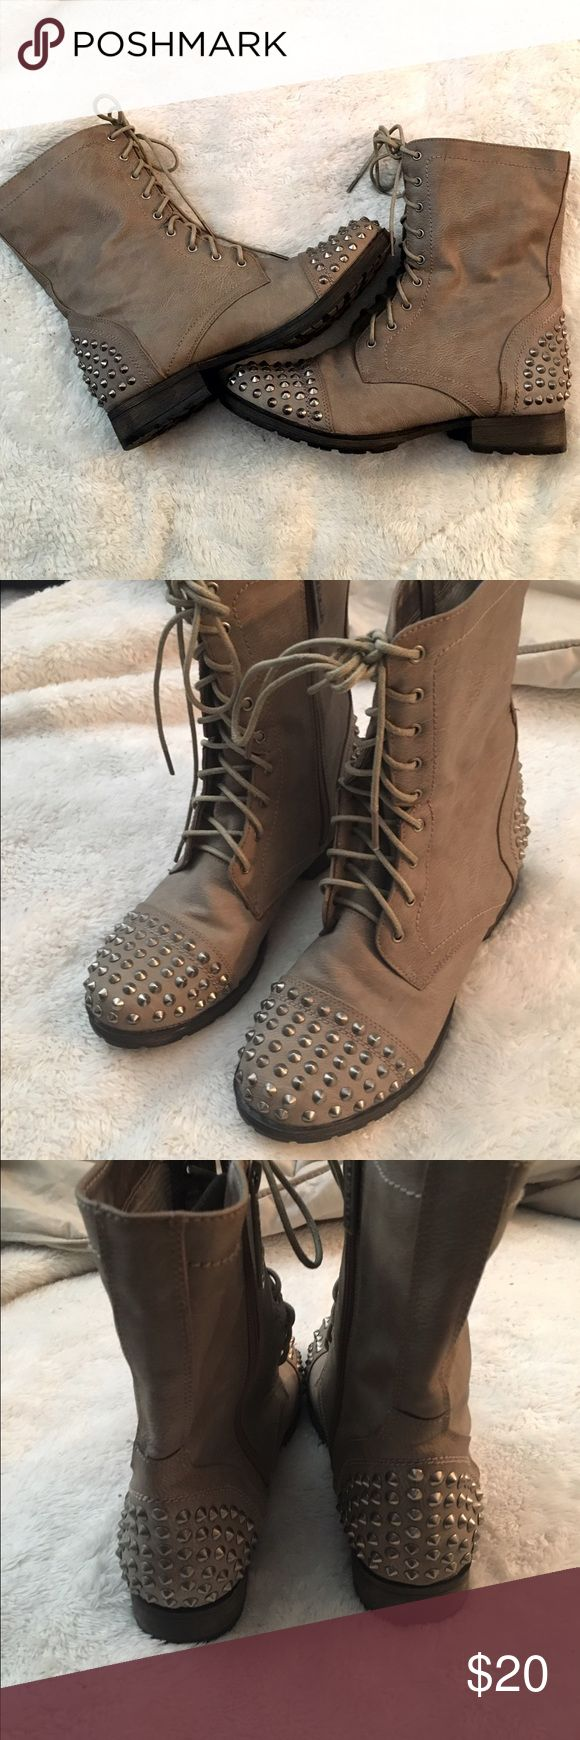 17 Best ideas about Cute Combat Boots on Pinterest | Combat boots ...